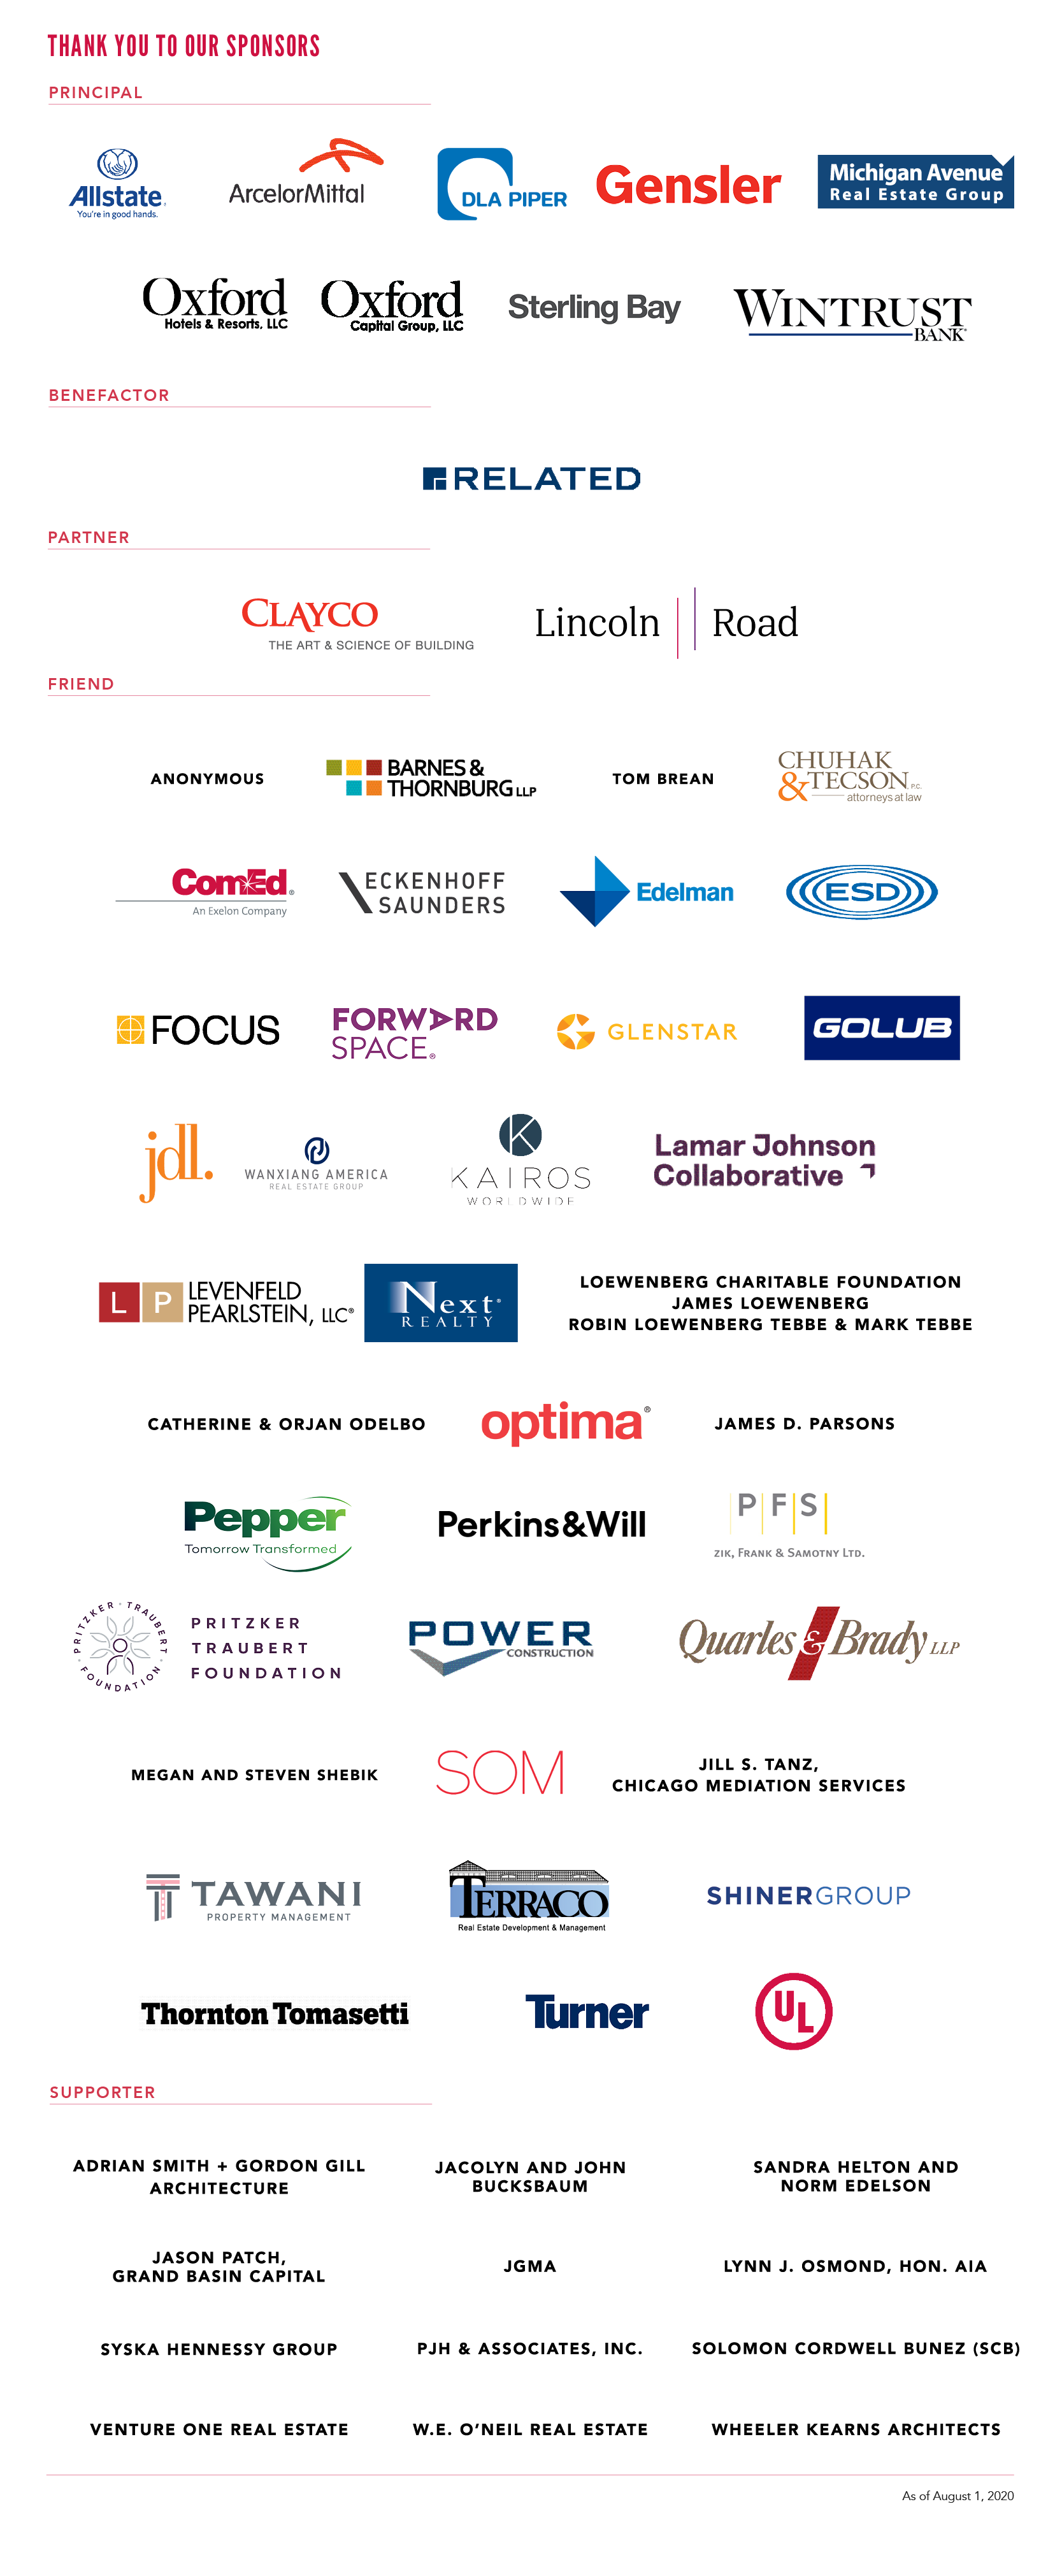 Thank you to our 2020 gala sponsors